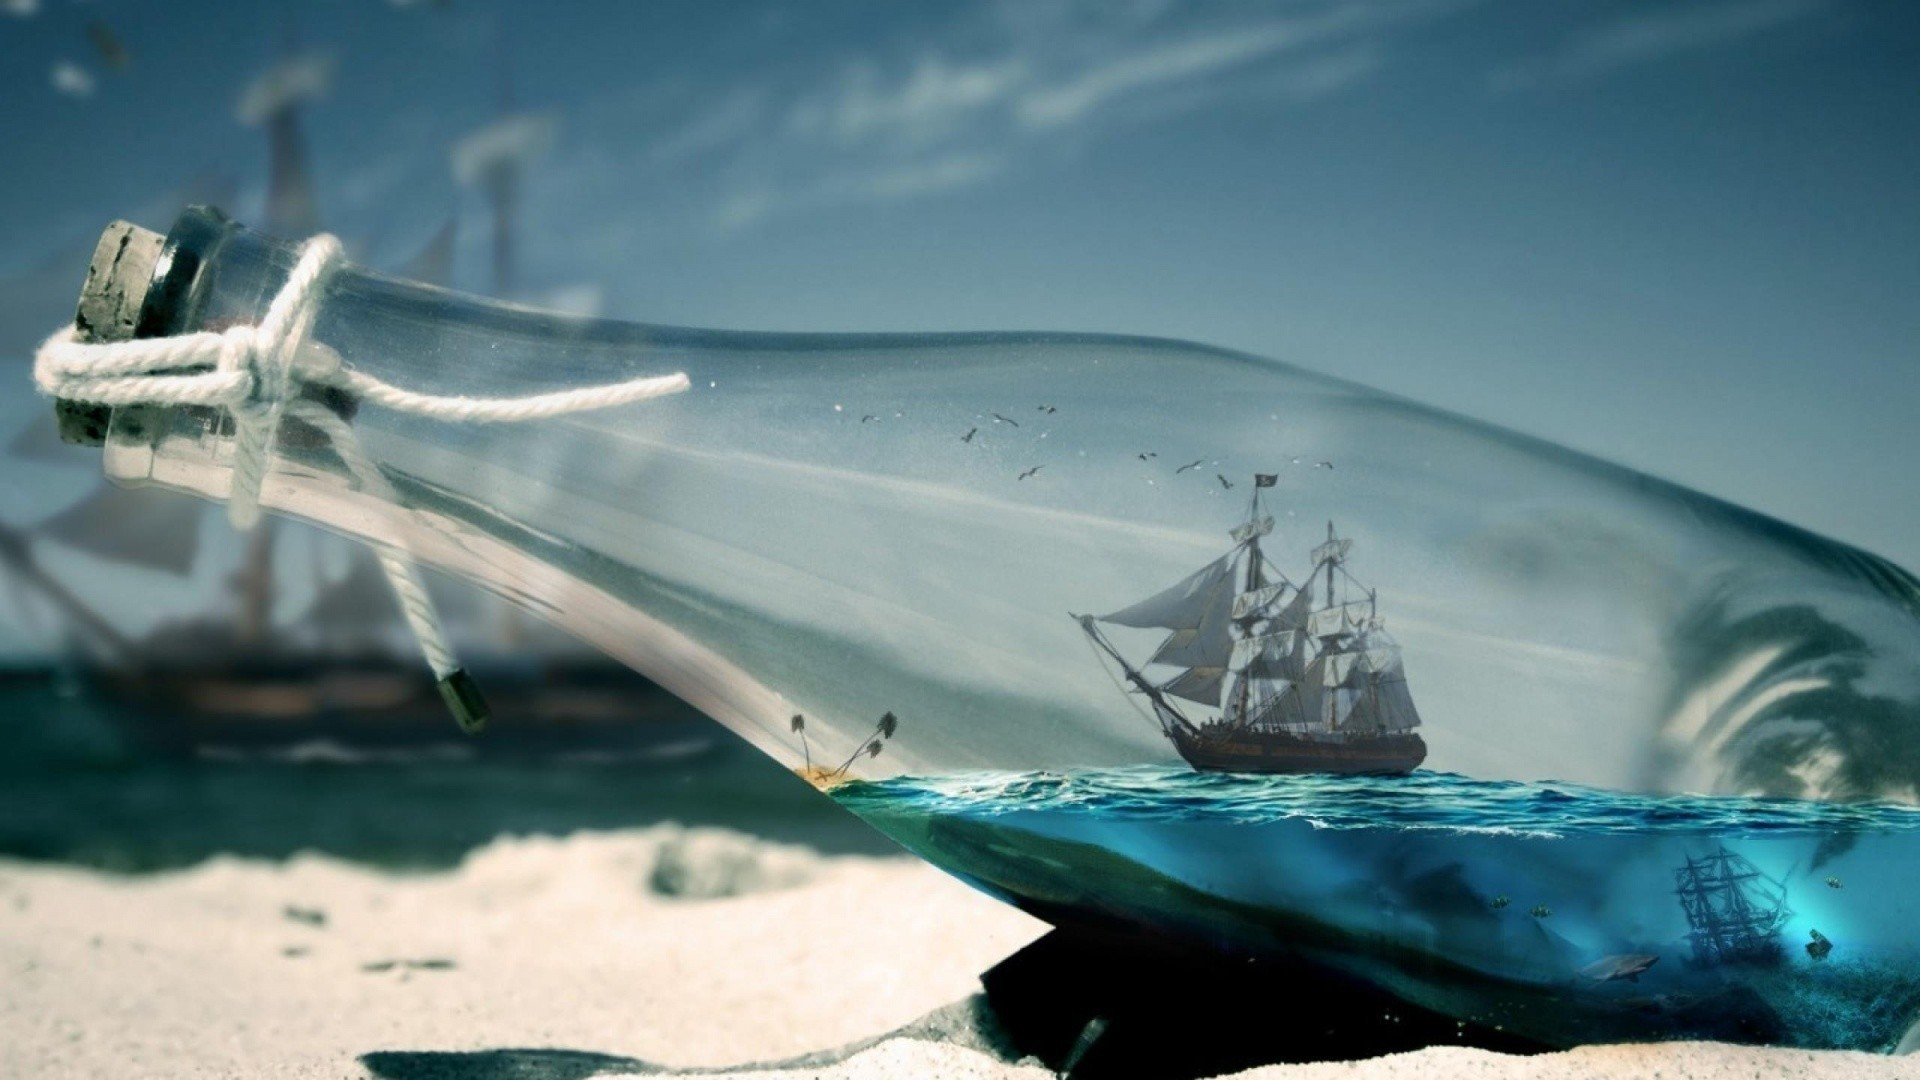 Ship In A Bottle Free Wallpaper and Background